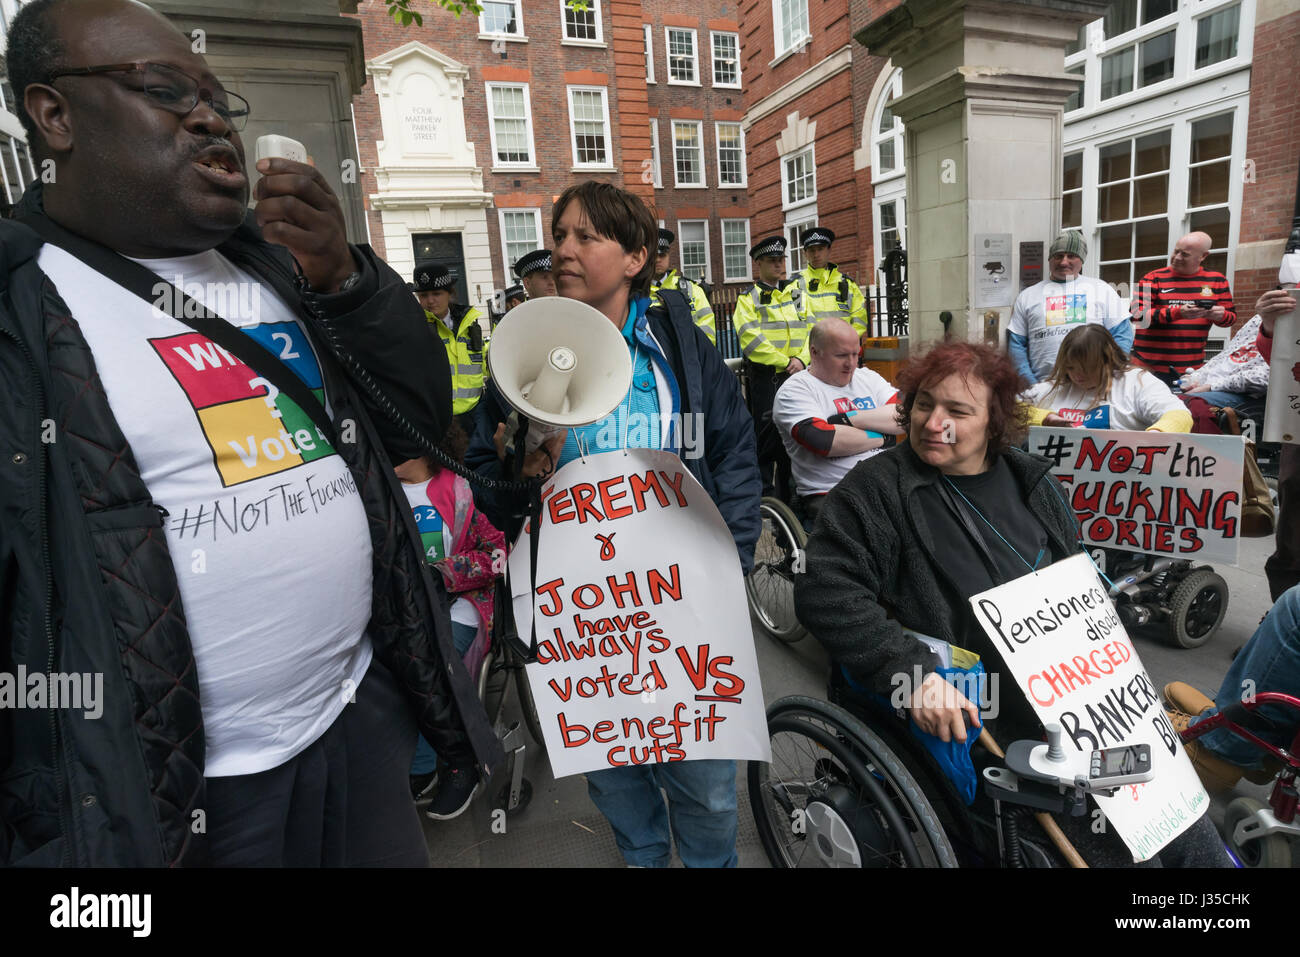 London, UK. 2nd May 2017. A DPAC member speaks in front of the Tory HQ, in the protest by Disabled People Against - Stock Image